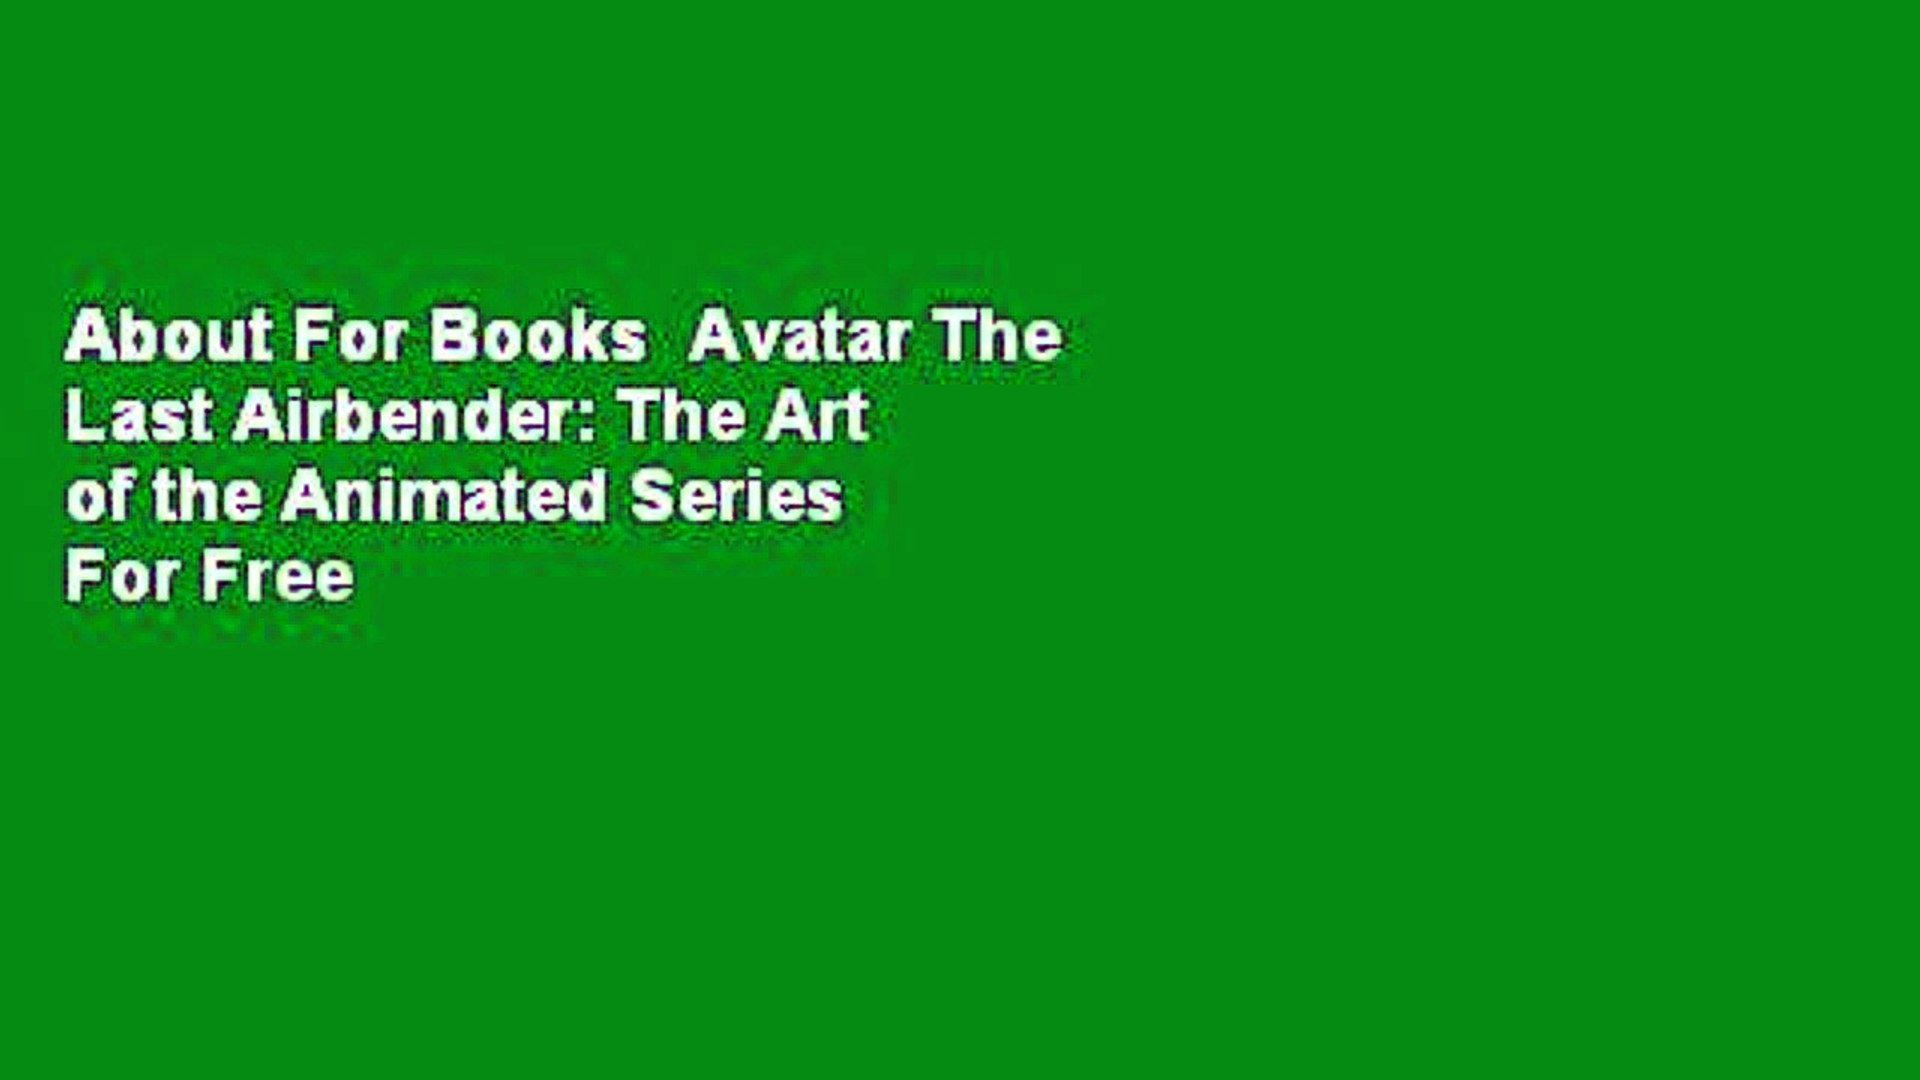 About For Books  Avatar The Last Airbender: The Art of the Animated Series  For Free